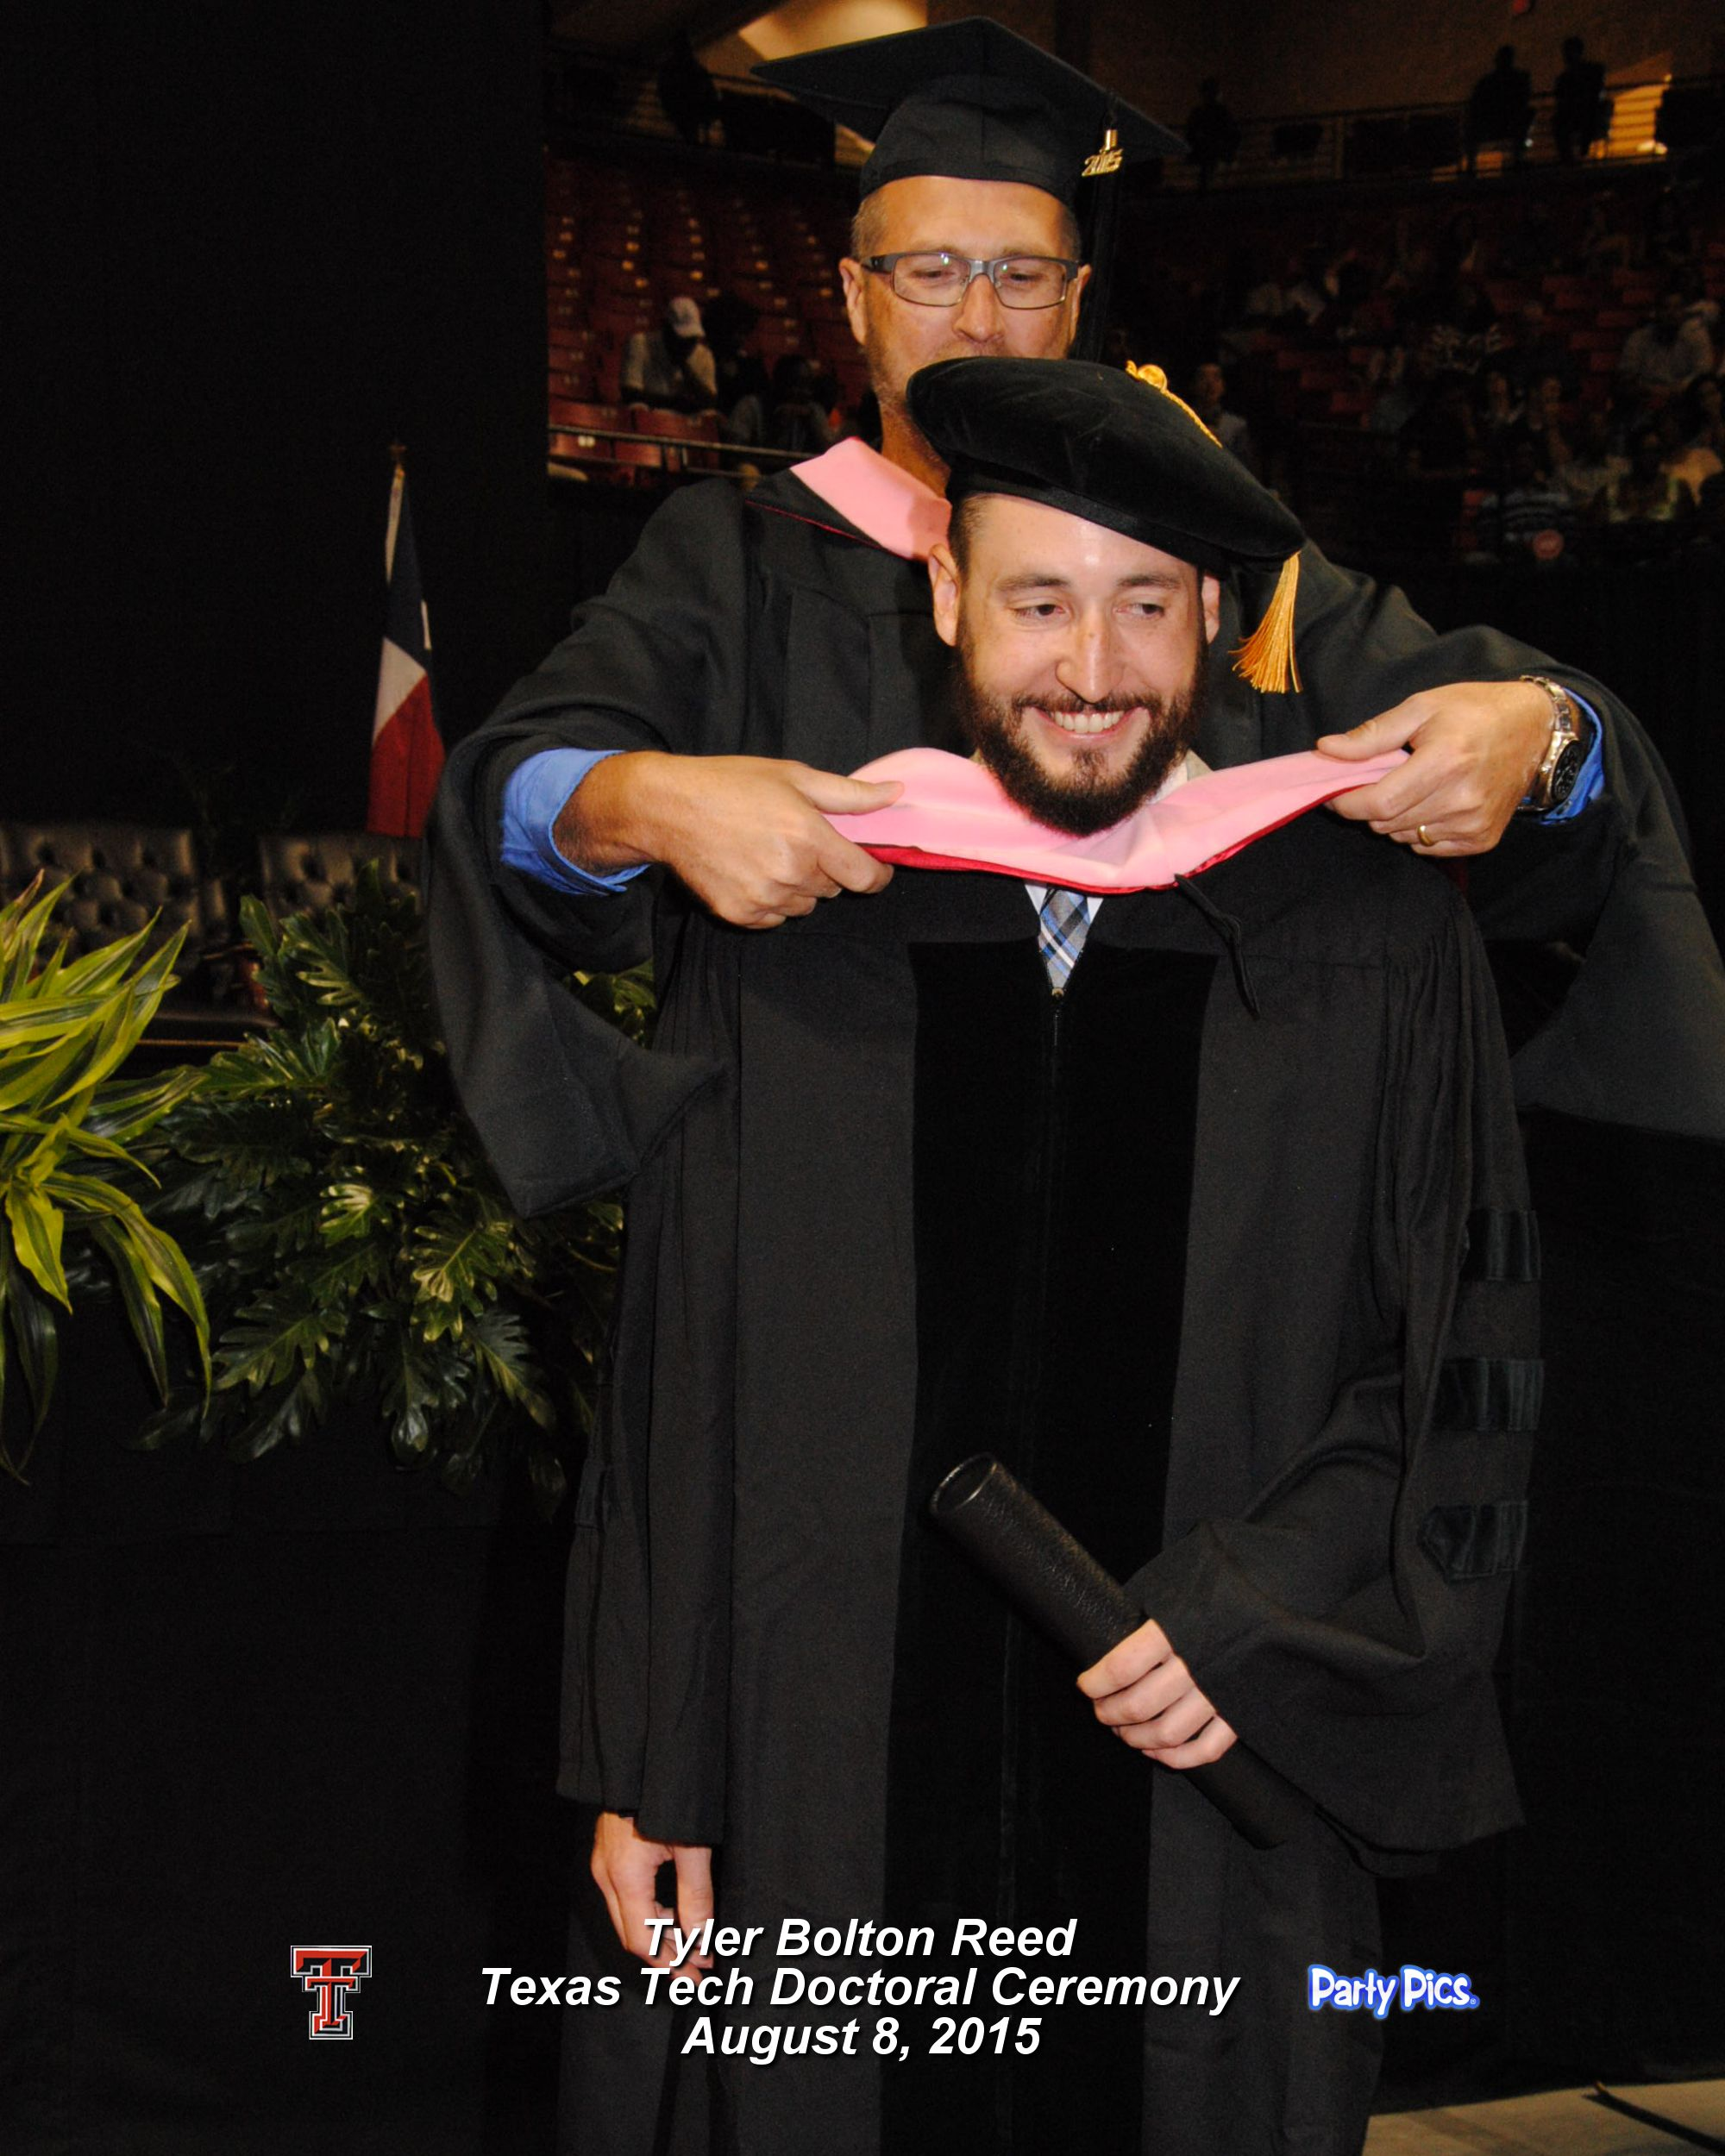 Dr. Reed, Graduation, Hooding